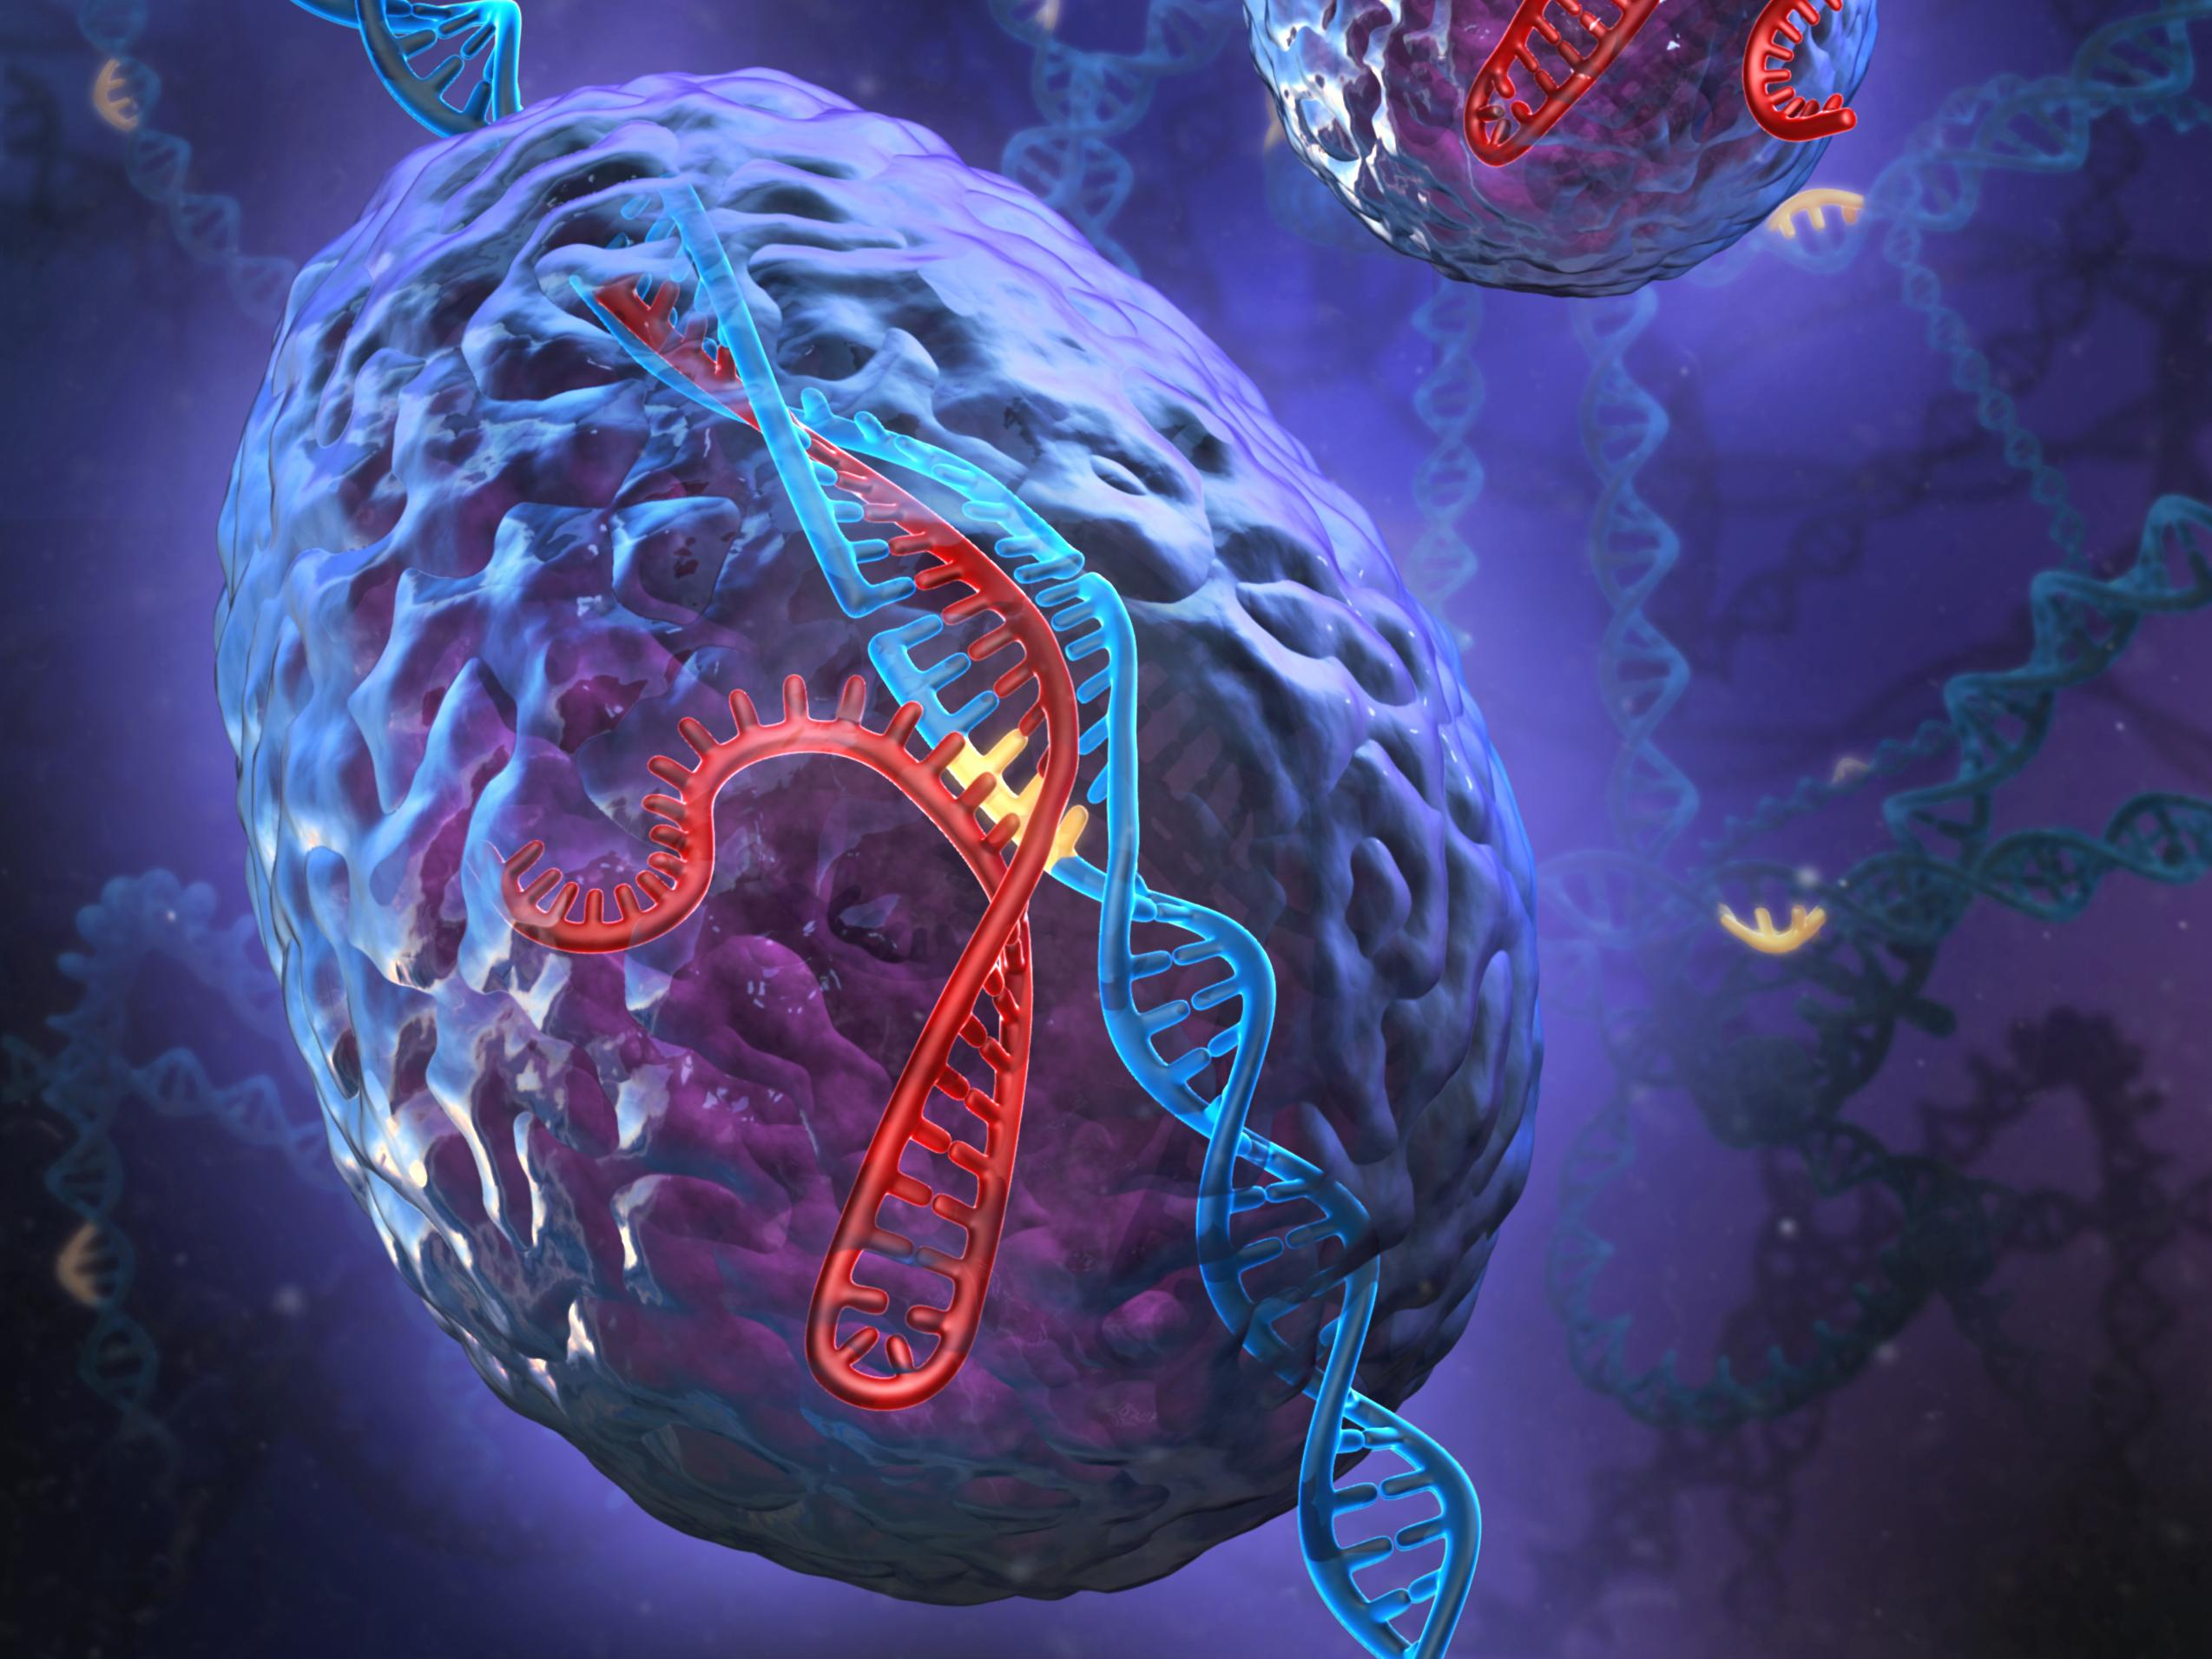 CRISPR/Cas9 gene activation 'guide' could lead to new ...